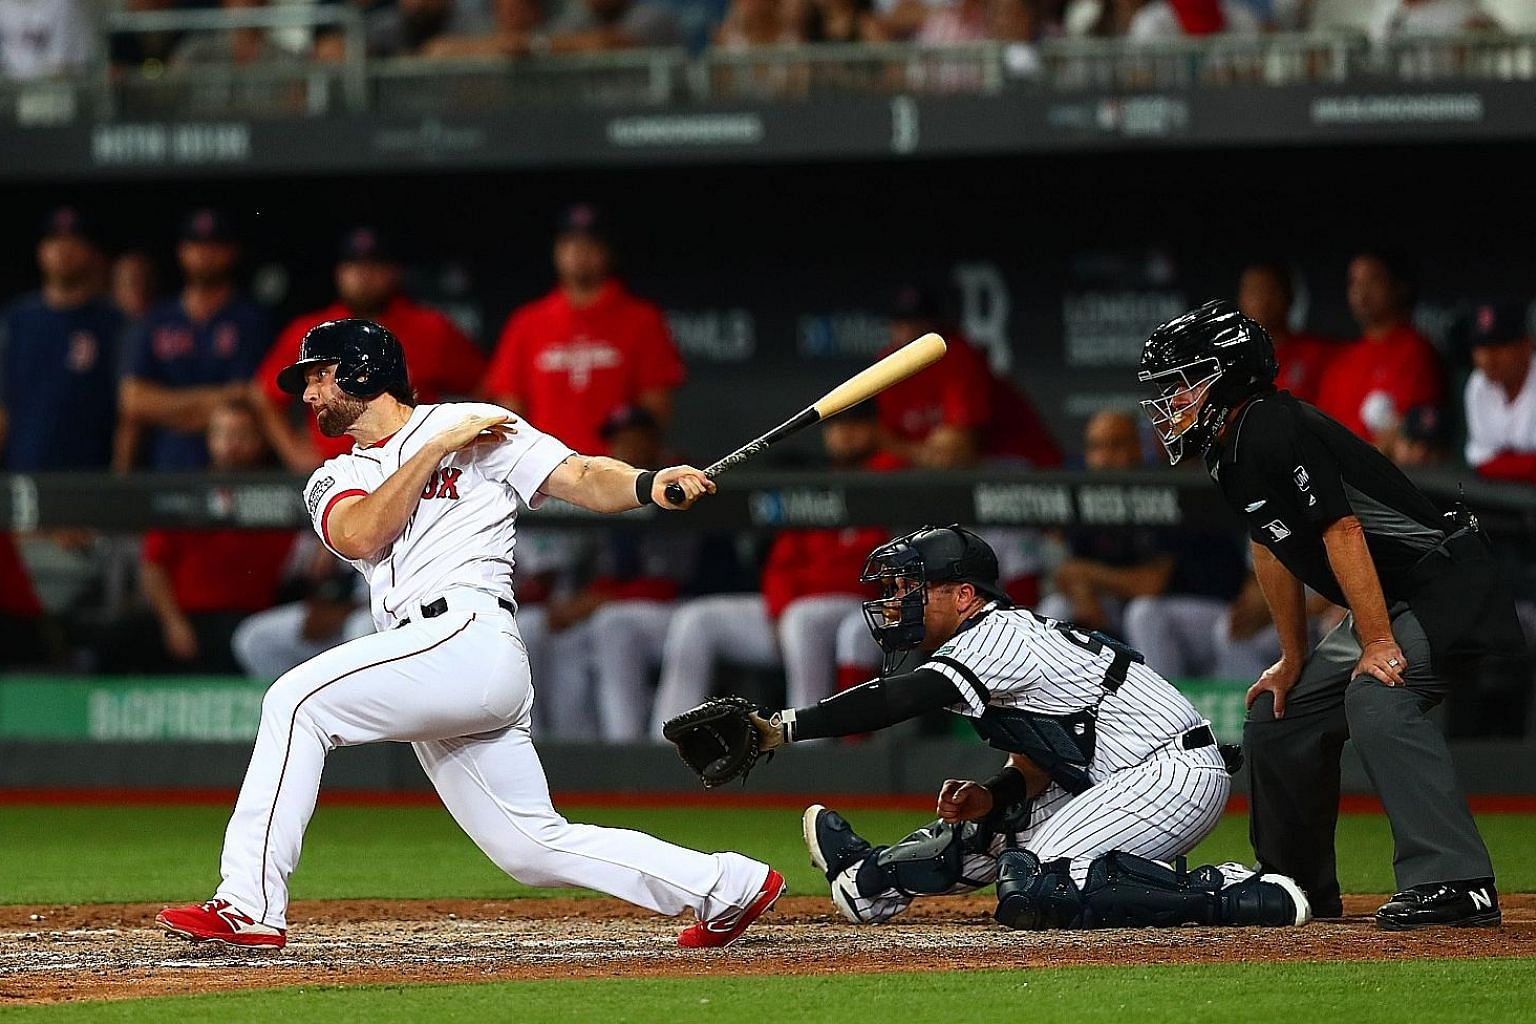 Sam Travis of the Boston Red Sox watching the last hit of the game fly towards second base during Game 1 of the Major League Baseball London Series on Saturday, as Boston and the New York Yankees took their legendary rivalry to Europe for the first t